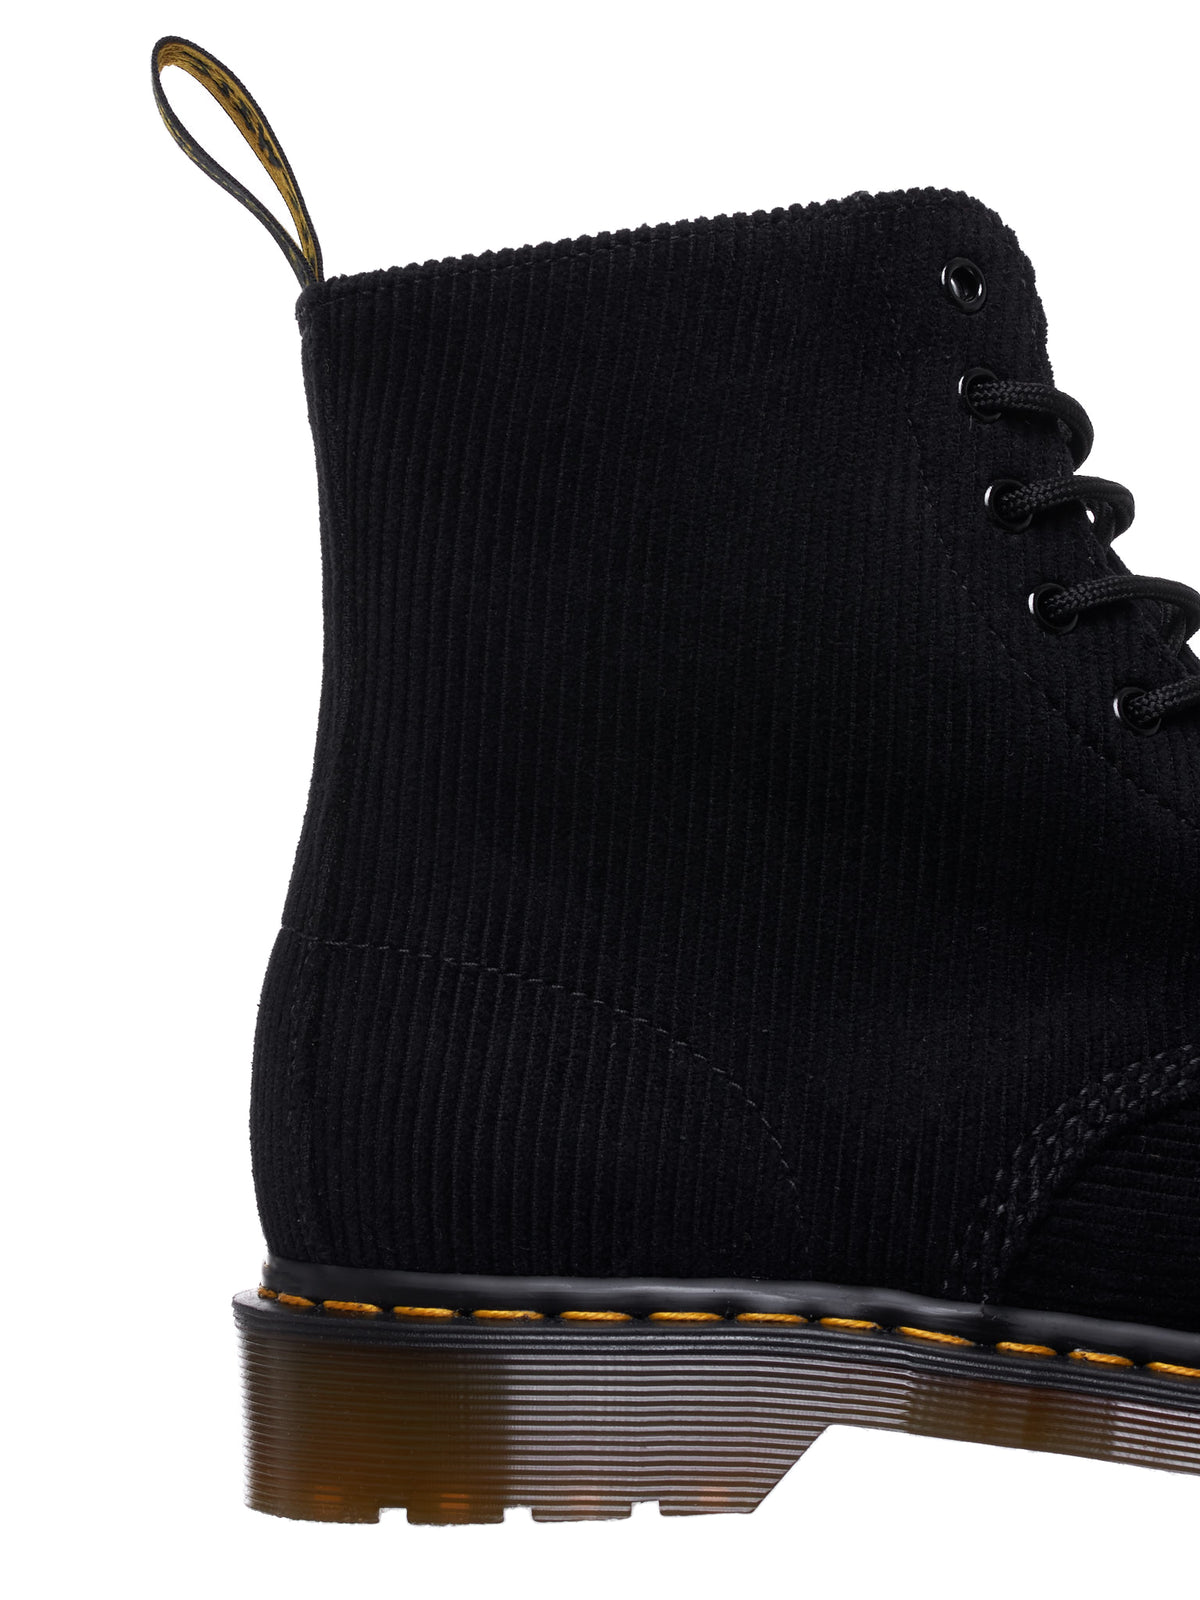 Dr. Martens x Undercover Boots | H.Lorenzo Detail 2